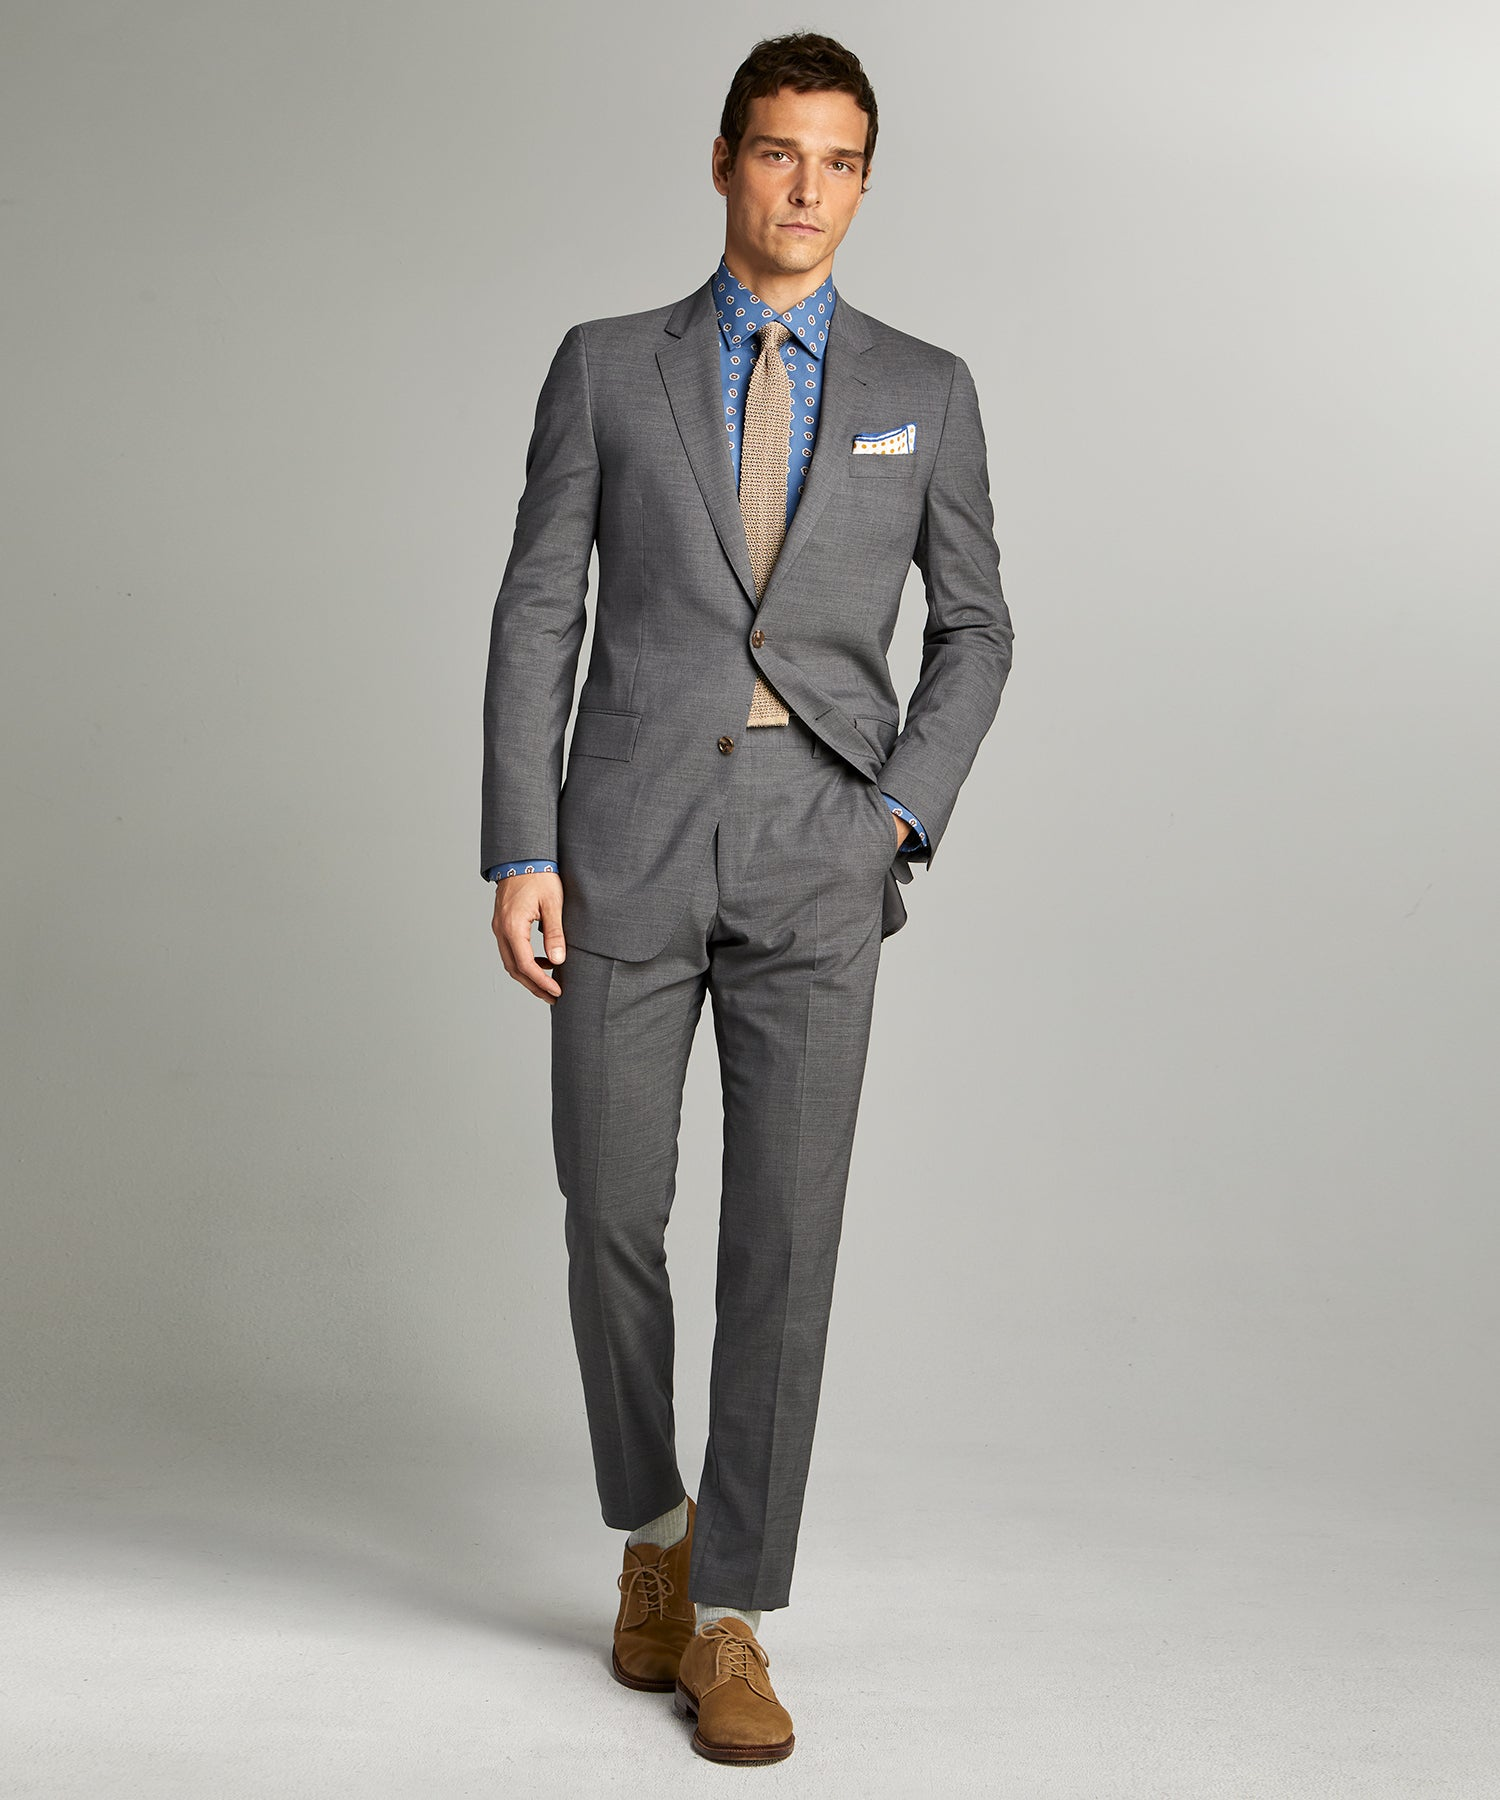 Sutton Tropical Wool Suit in Dark Charcoal